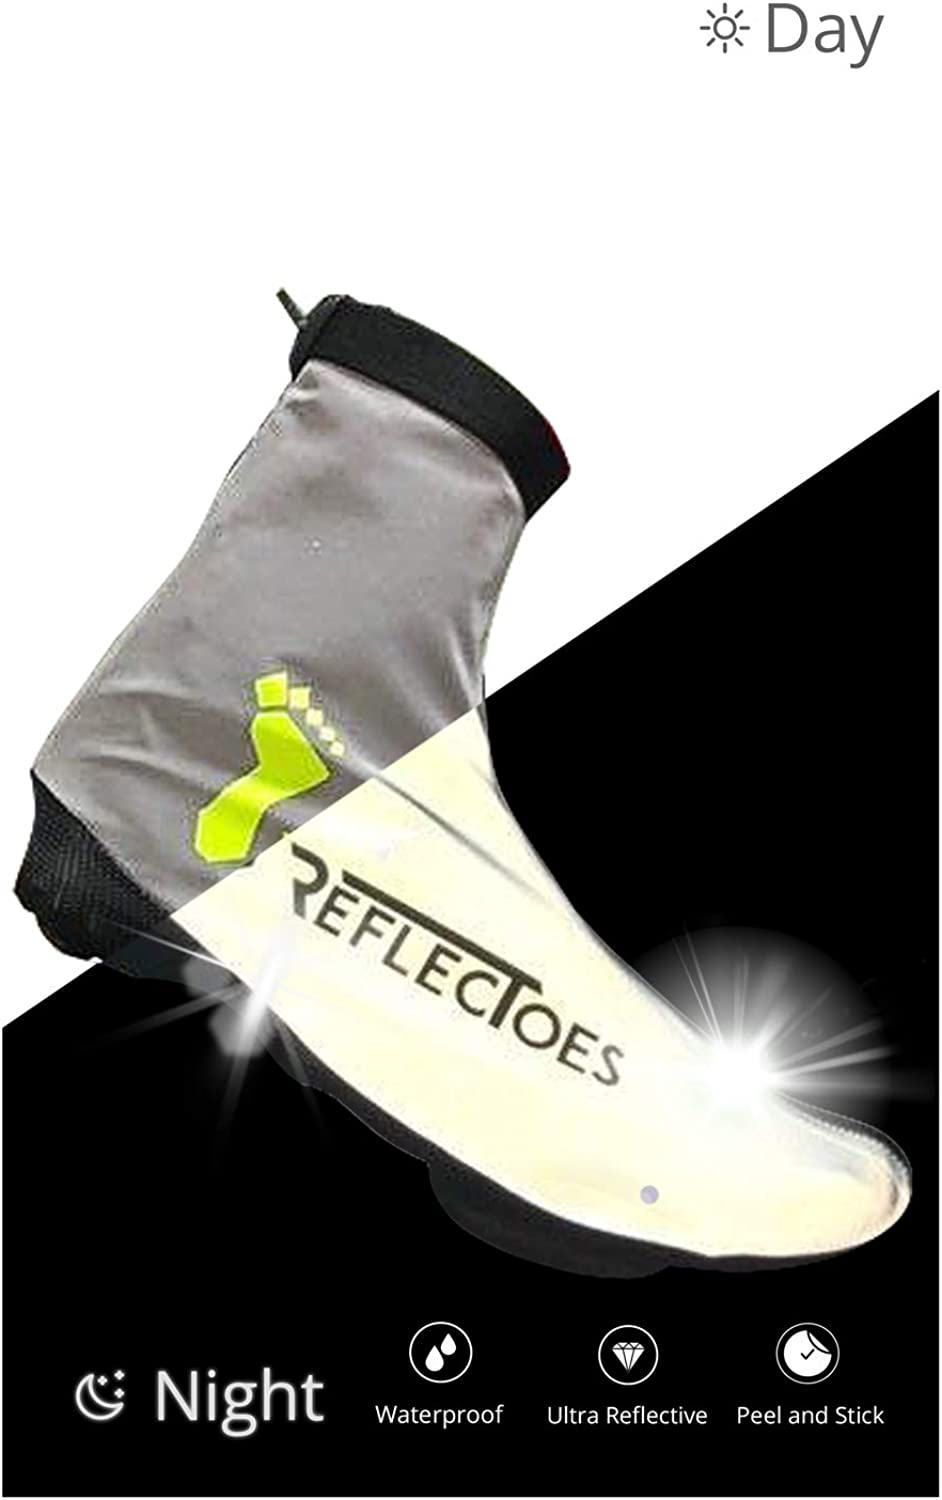 ReflecToes Full Reflective Winter Bike Shoe Covers for Cycling - Waterproof, Windproof Overshoes with 4-Way Stretch Material, Rear Zipper & BioMotion Technology - for Men & Women